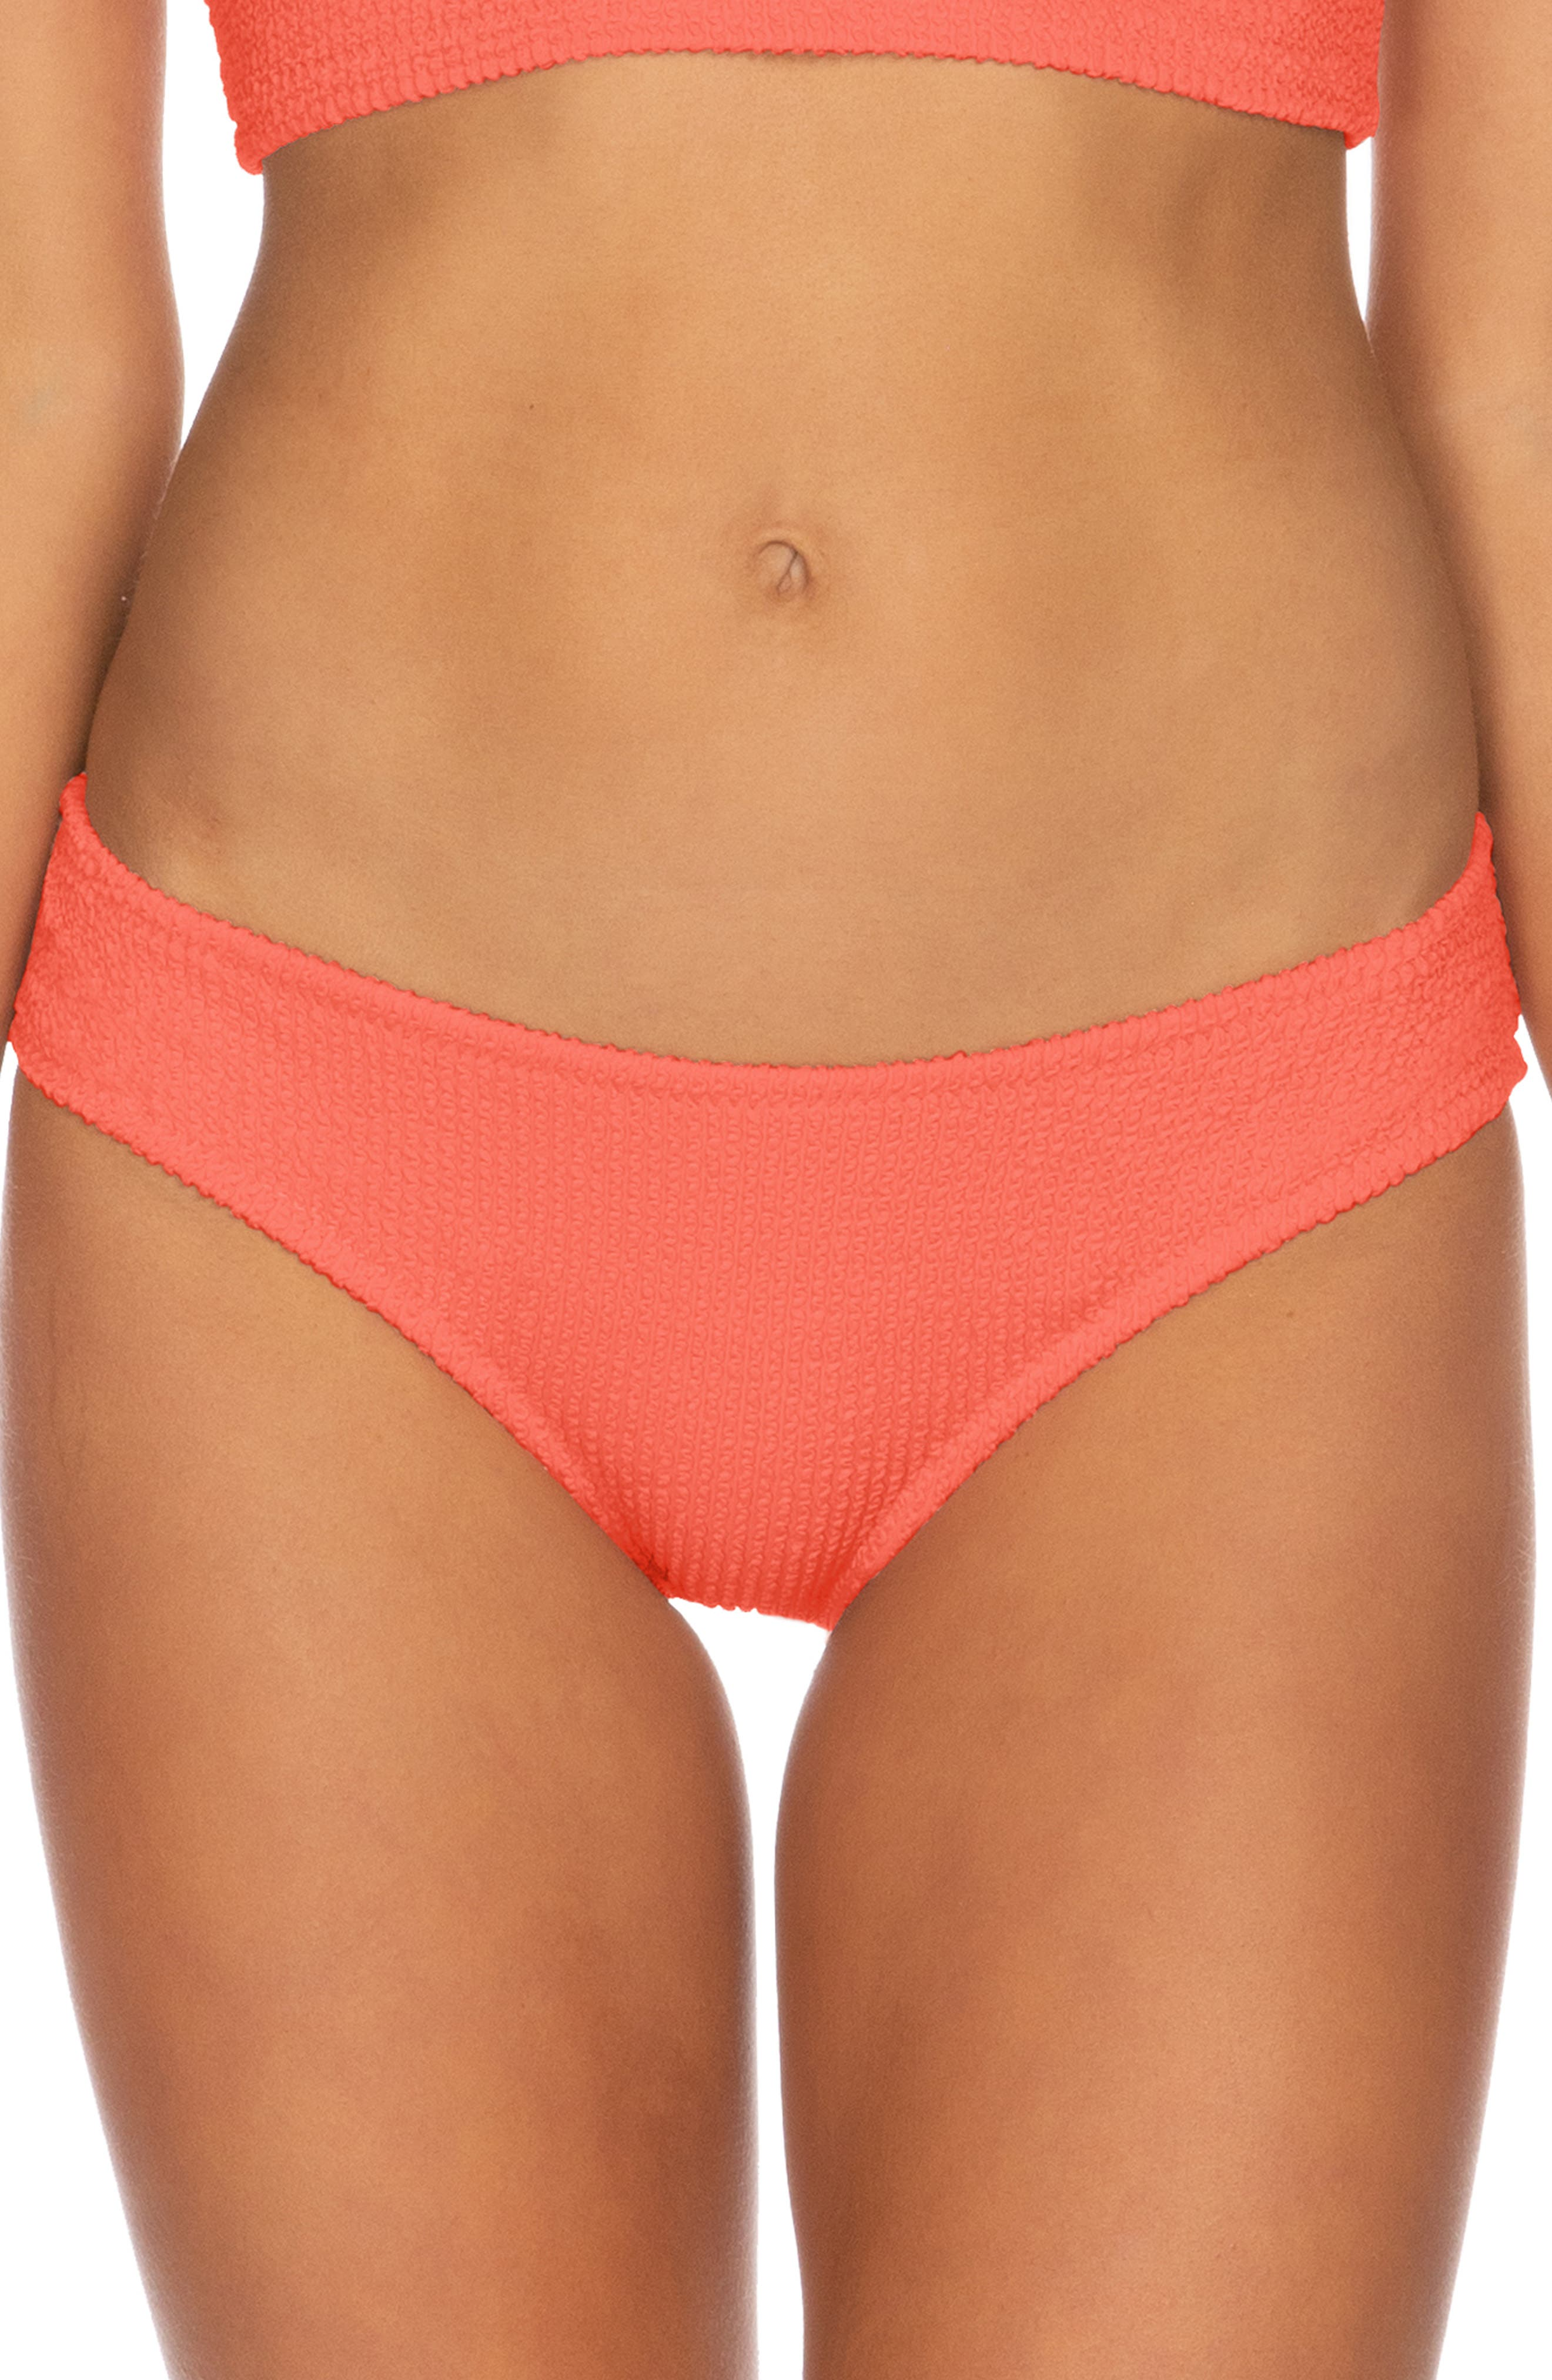 Isabella Rose Pucker Up Seersucker Bikini Bottoms, Coral